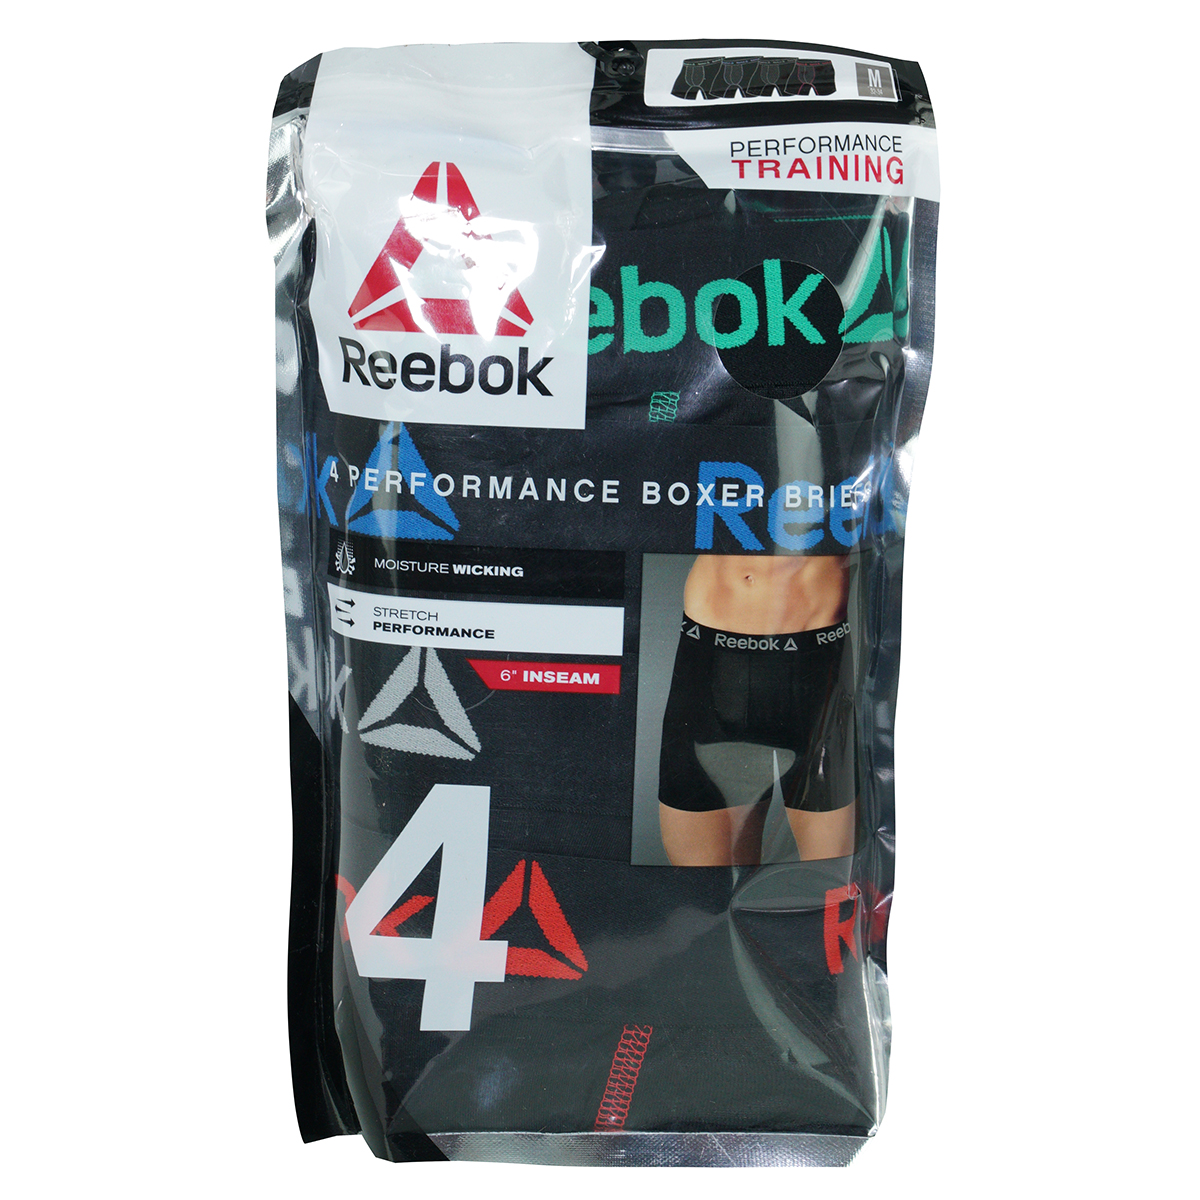 Reebok-Men-039-s-Performance-Boxer-Briefs-4-Pack thumbnail 5